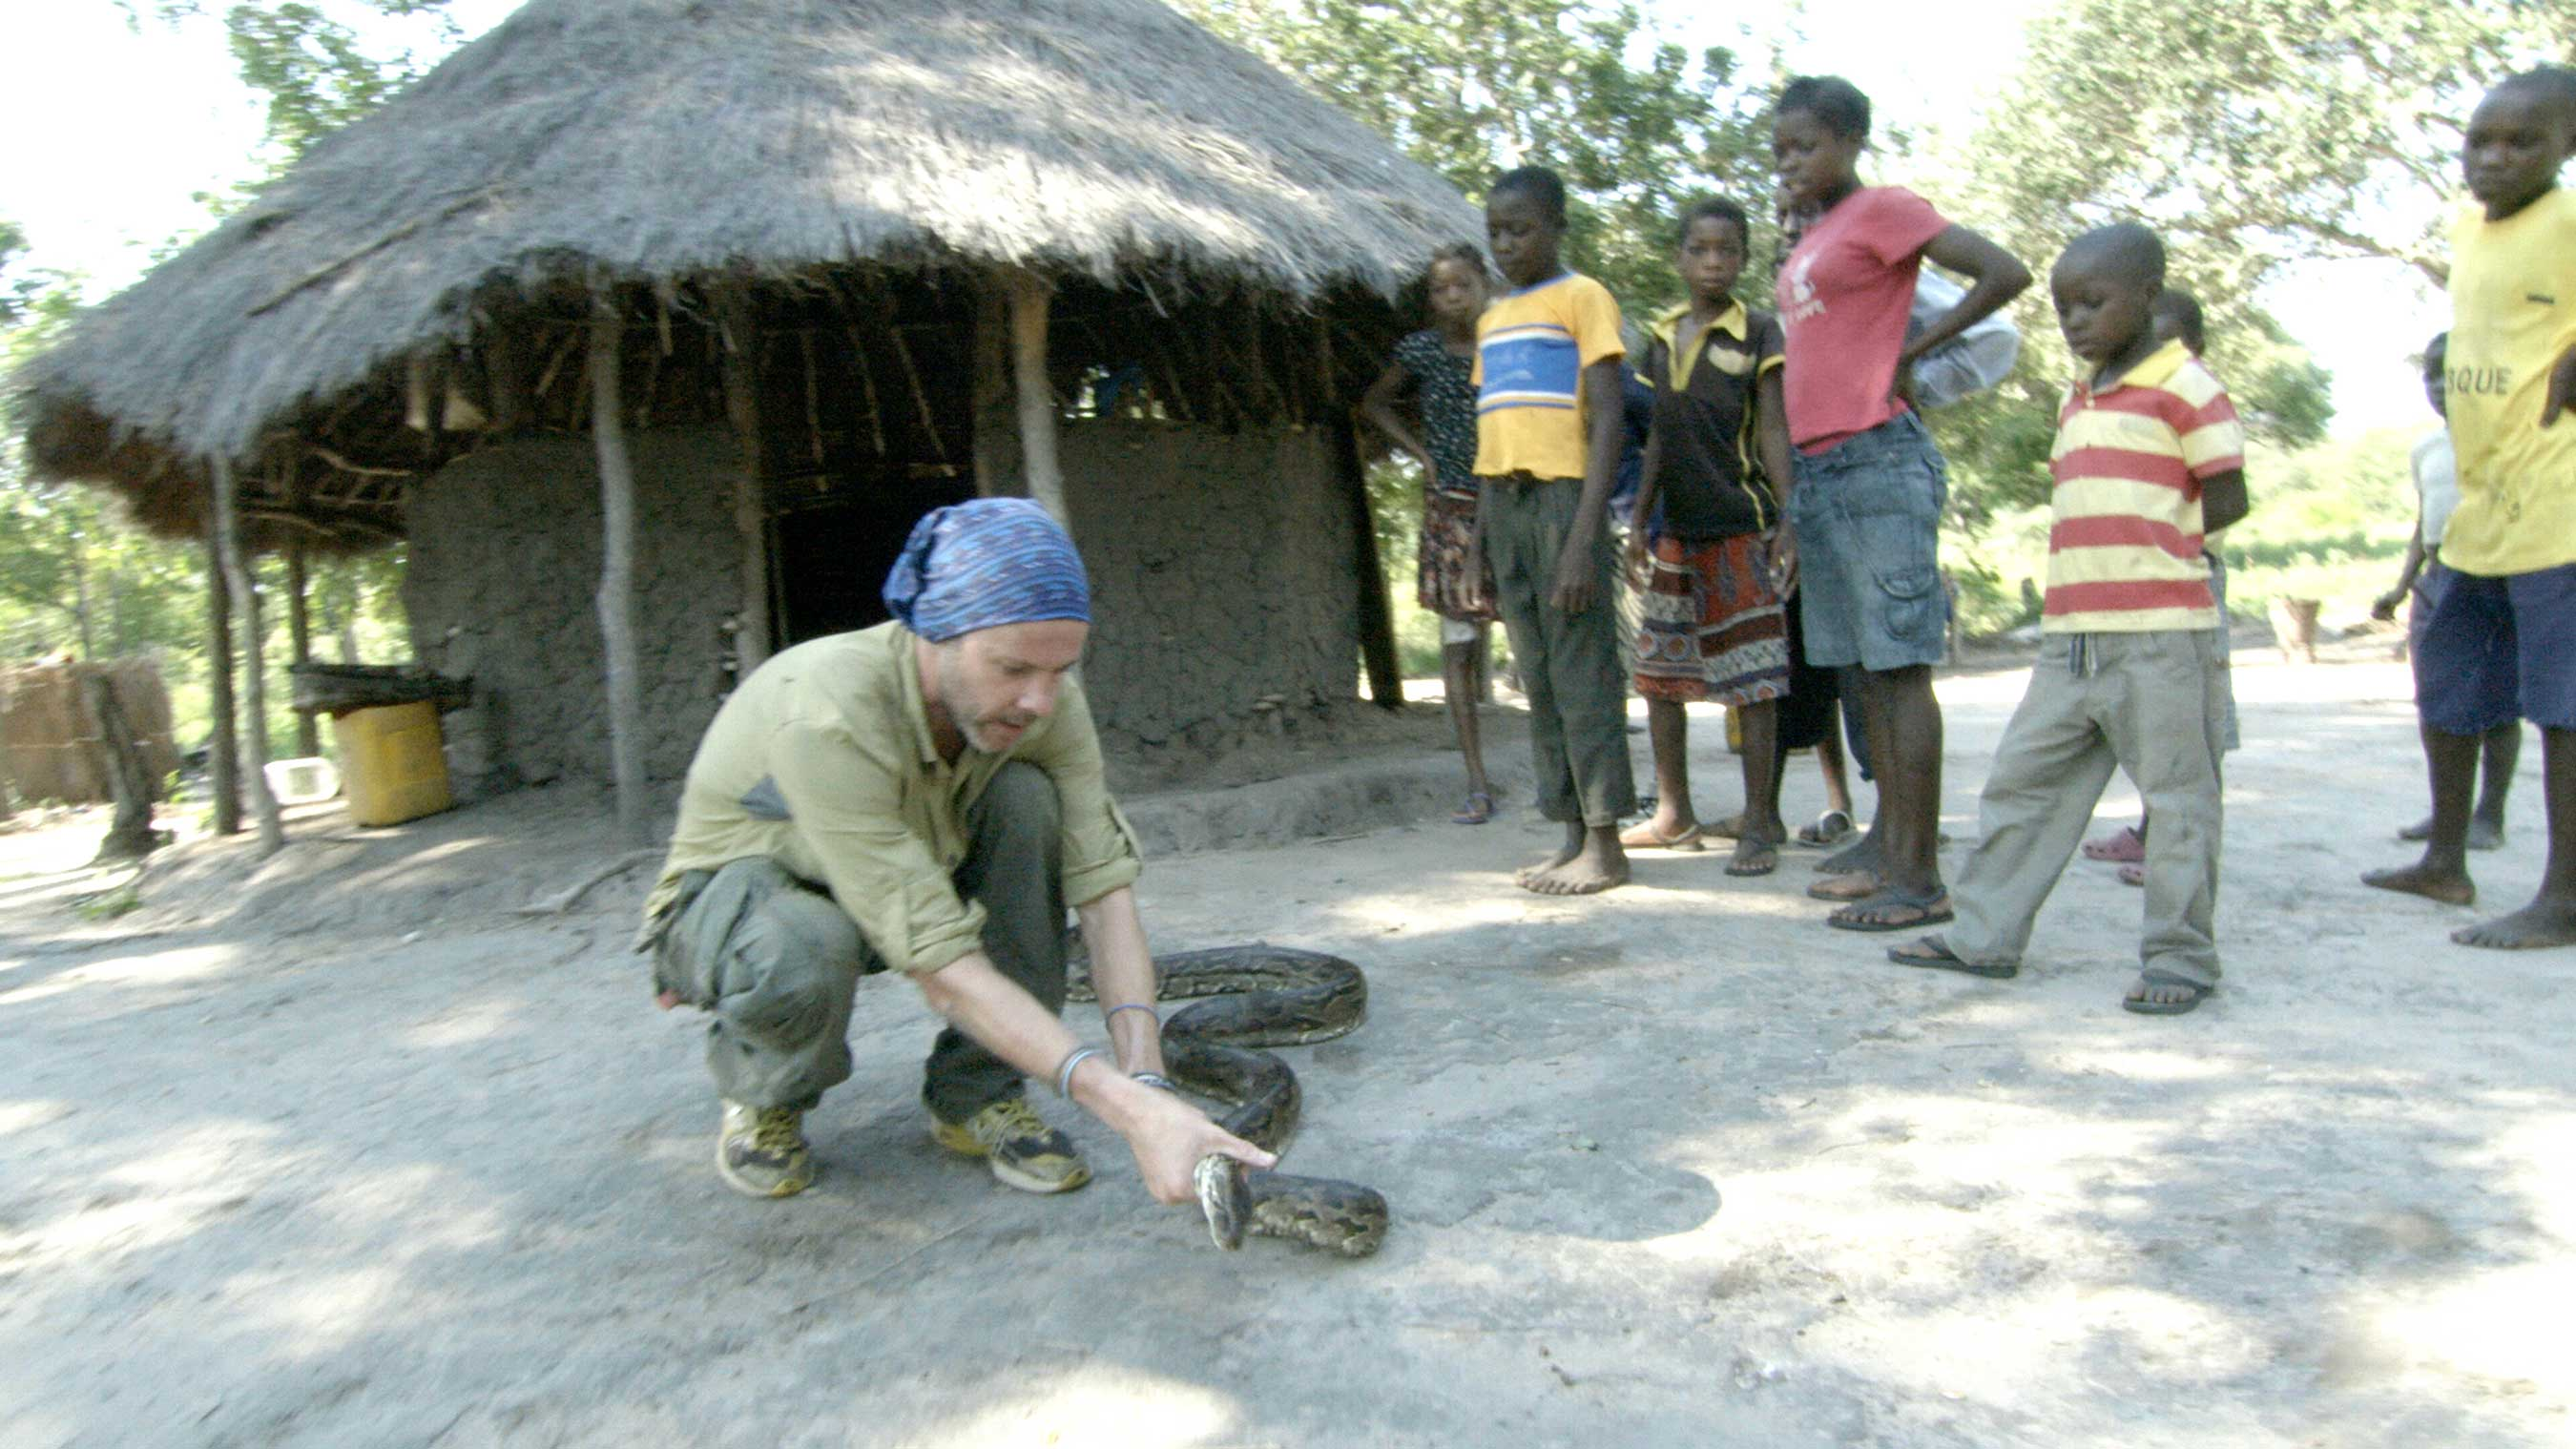 In Mozambique, Dominic Monaghan attends to a wounded rock python that a group of schoolchildren discovered nearby.